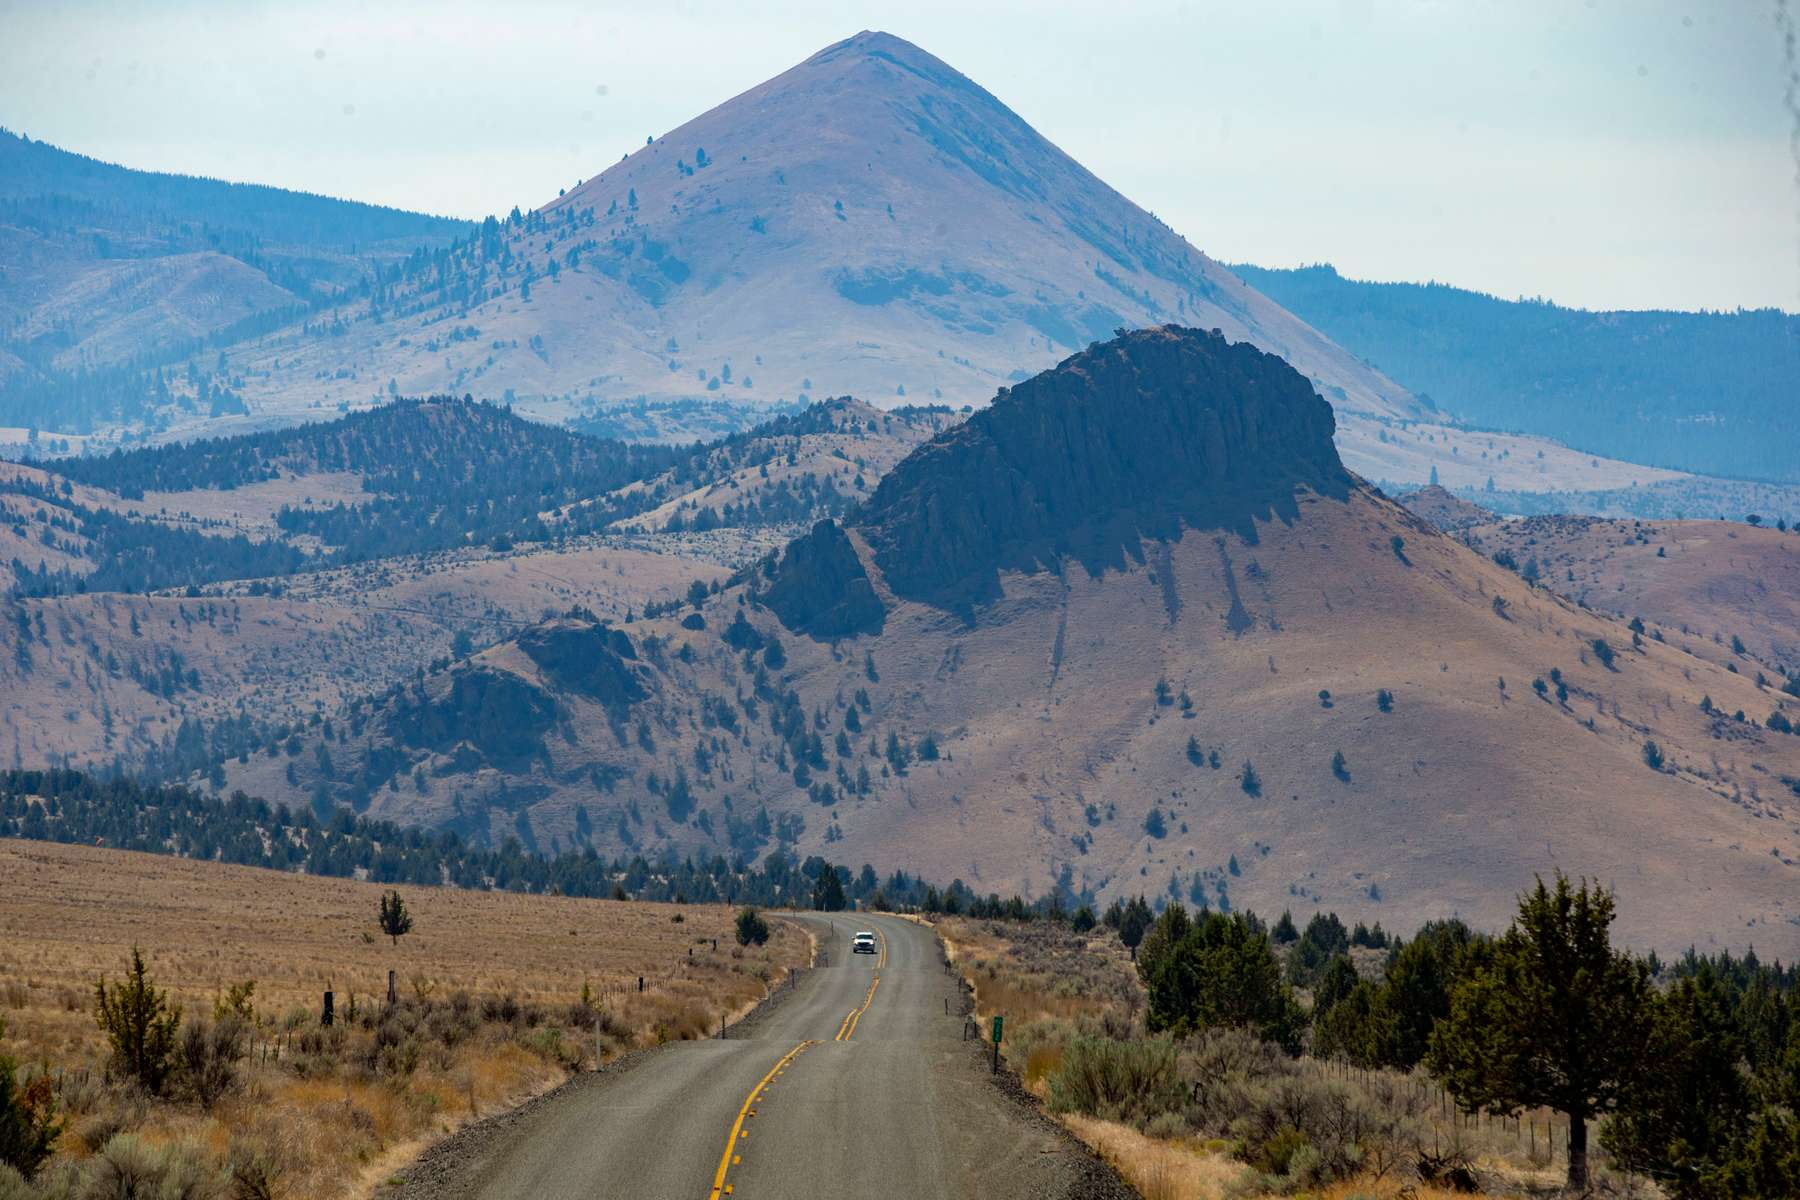 A vehicle drives north on Highway 207 outside of Mitchell Ore., Sept. 4, 2020. Wheeler County is 1,700 square miles of rugged country.